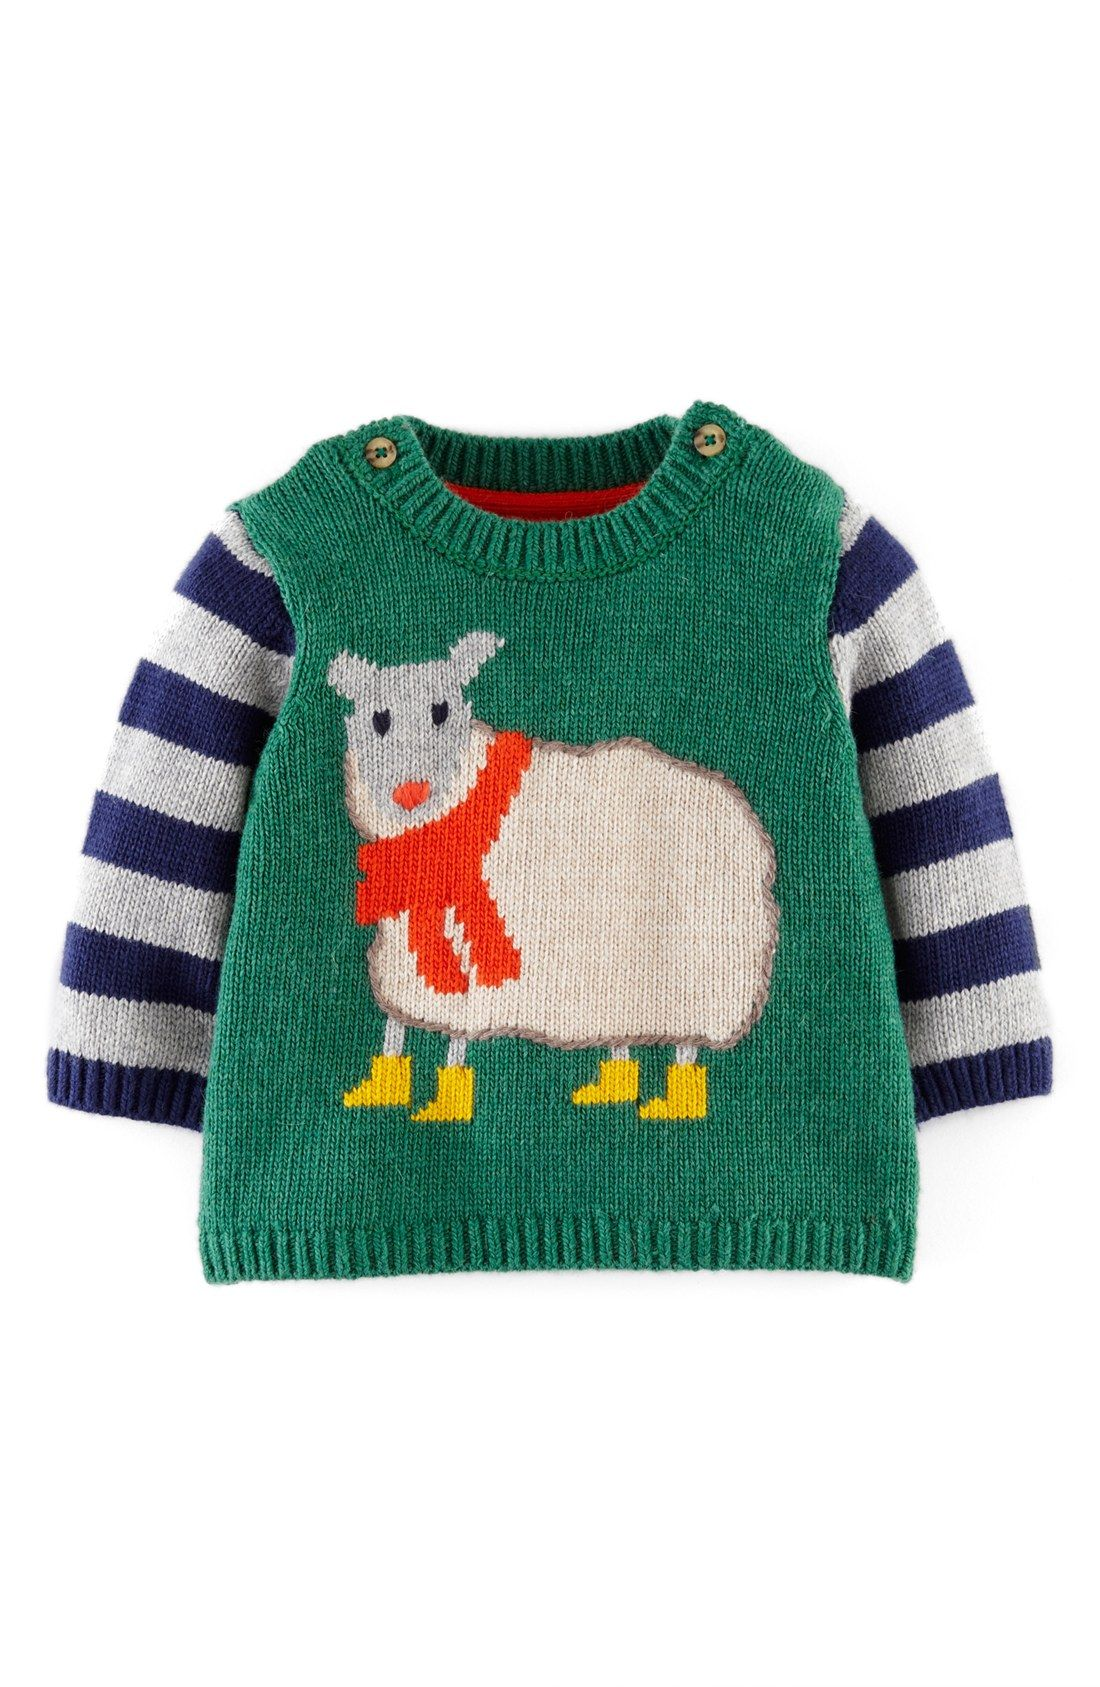 Counting sheep. | Kids Got Style | Pinterest | Kinderpullover ...